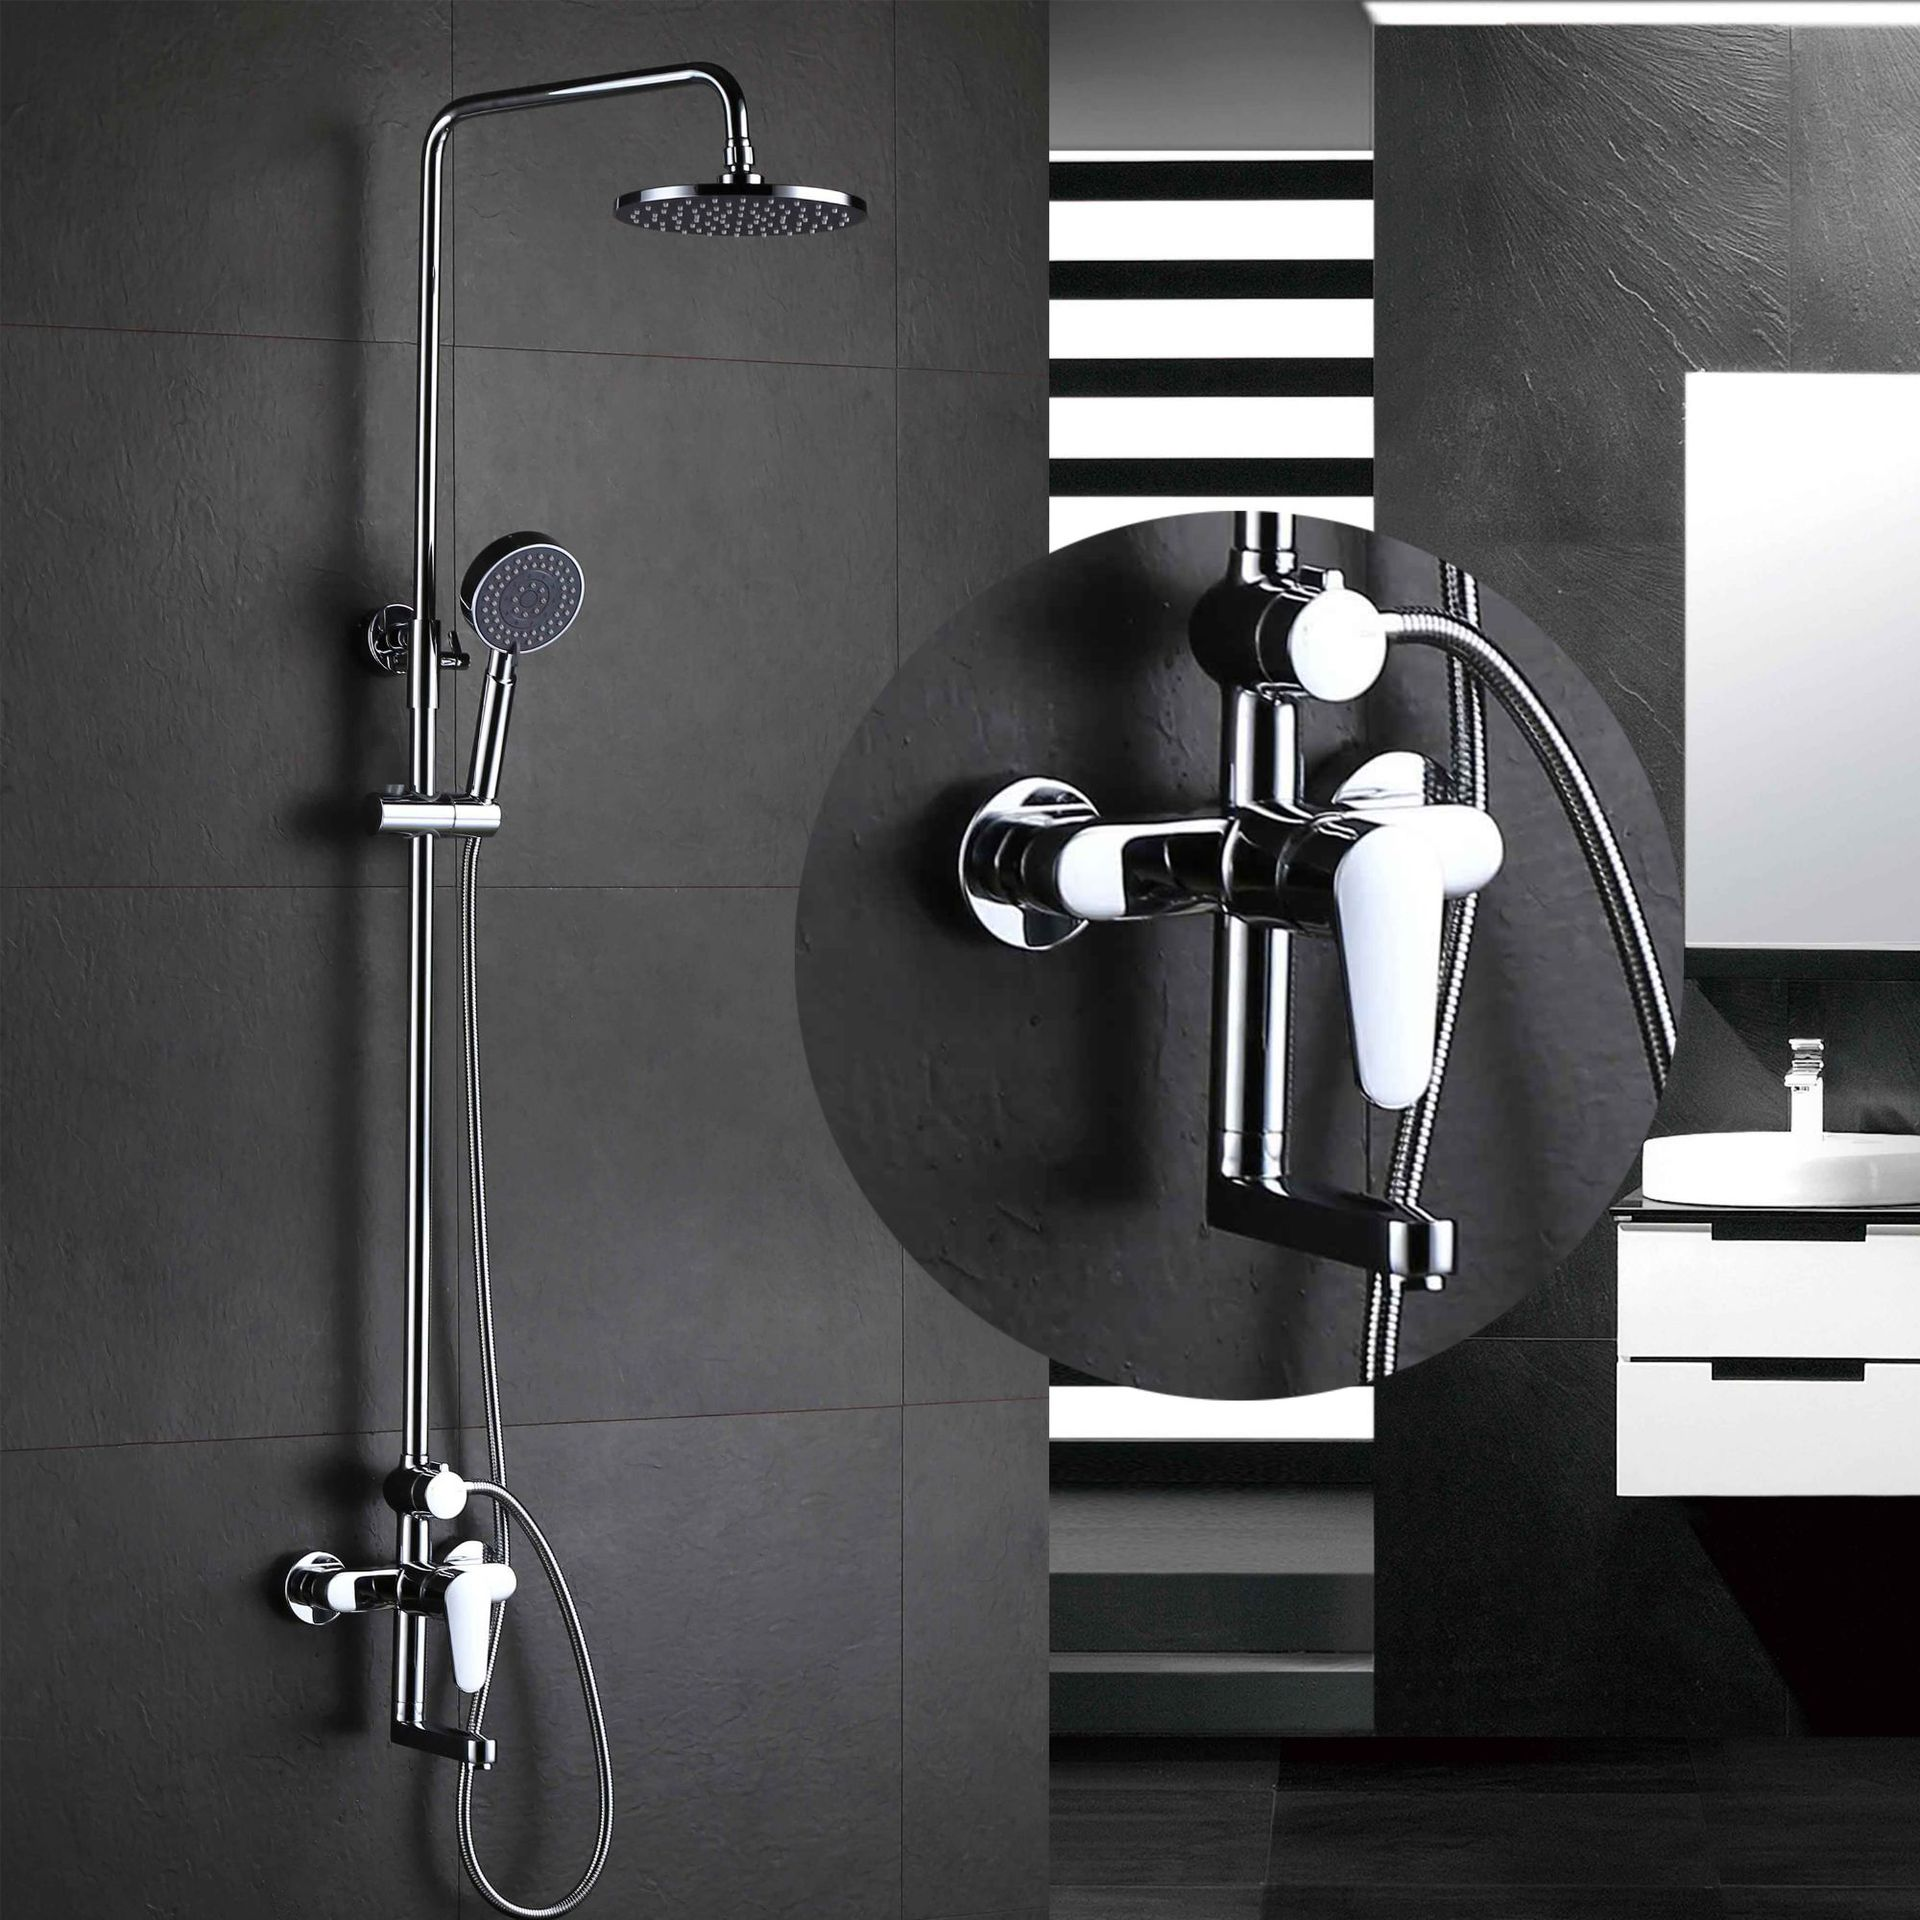 chrome all copper Hot and cold mixer shower faucet three ...